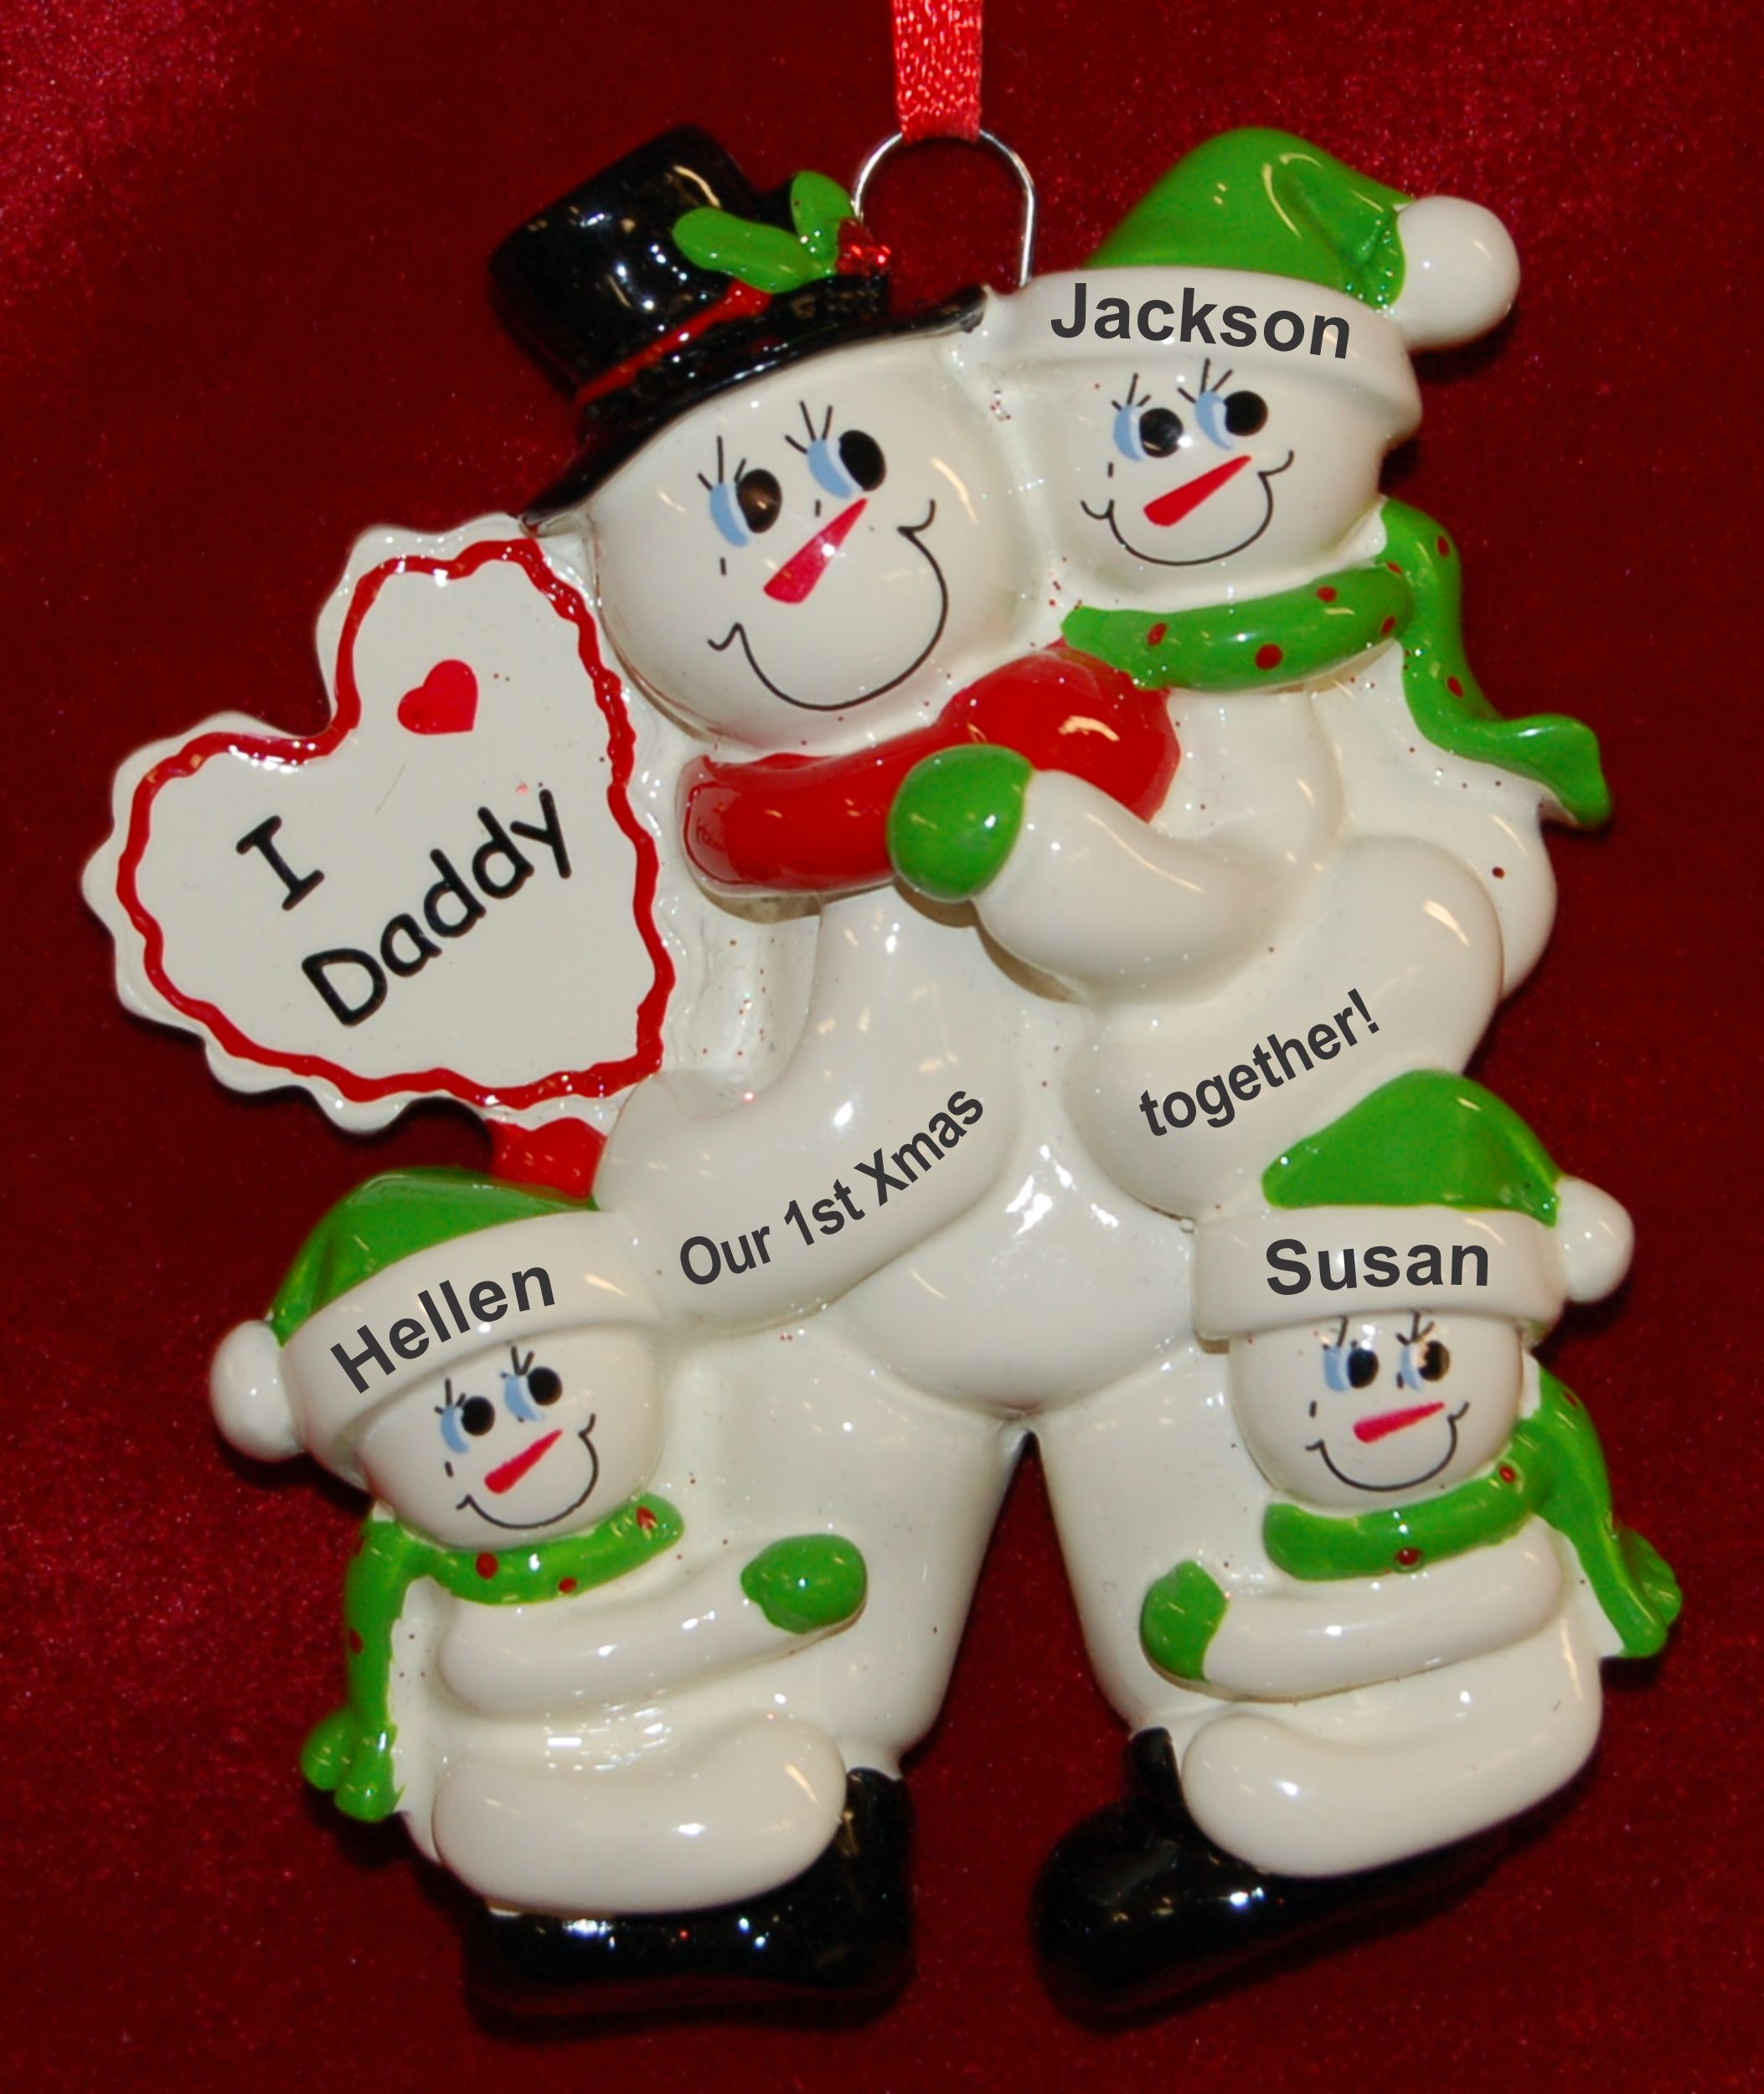 Personalized Single Dad Christmas Ornament 1st Xmas Together 3 Kids by Russell Rhodes